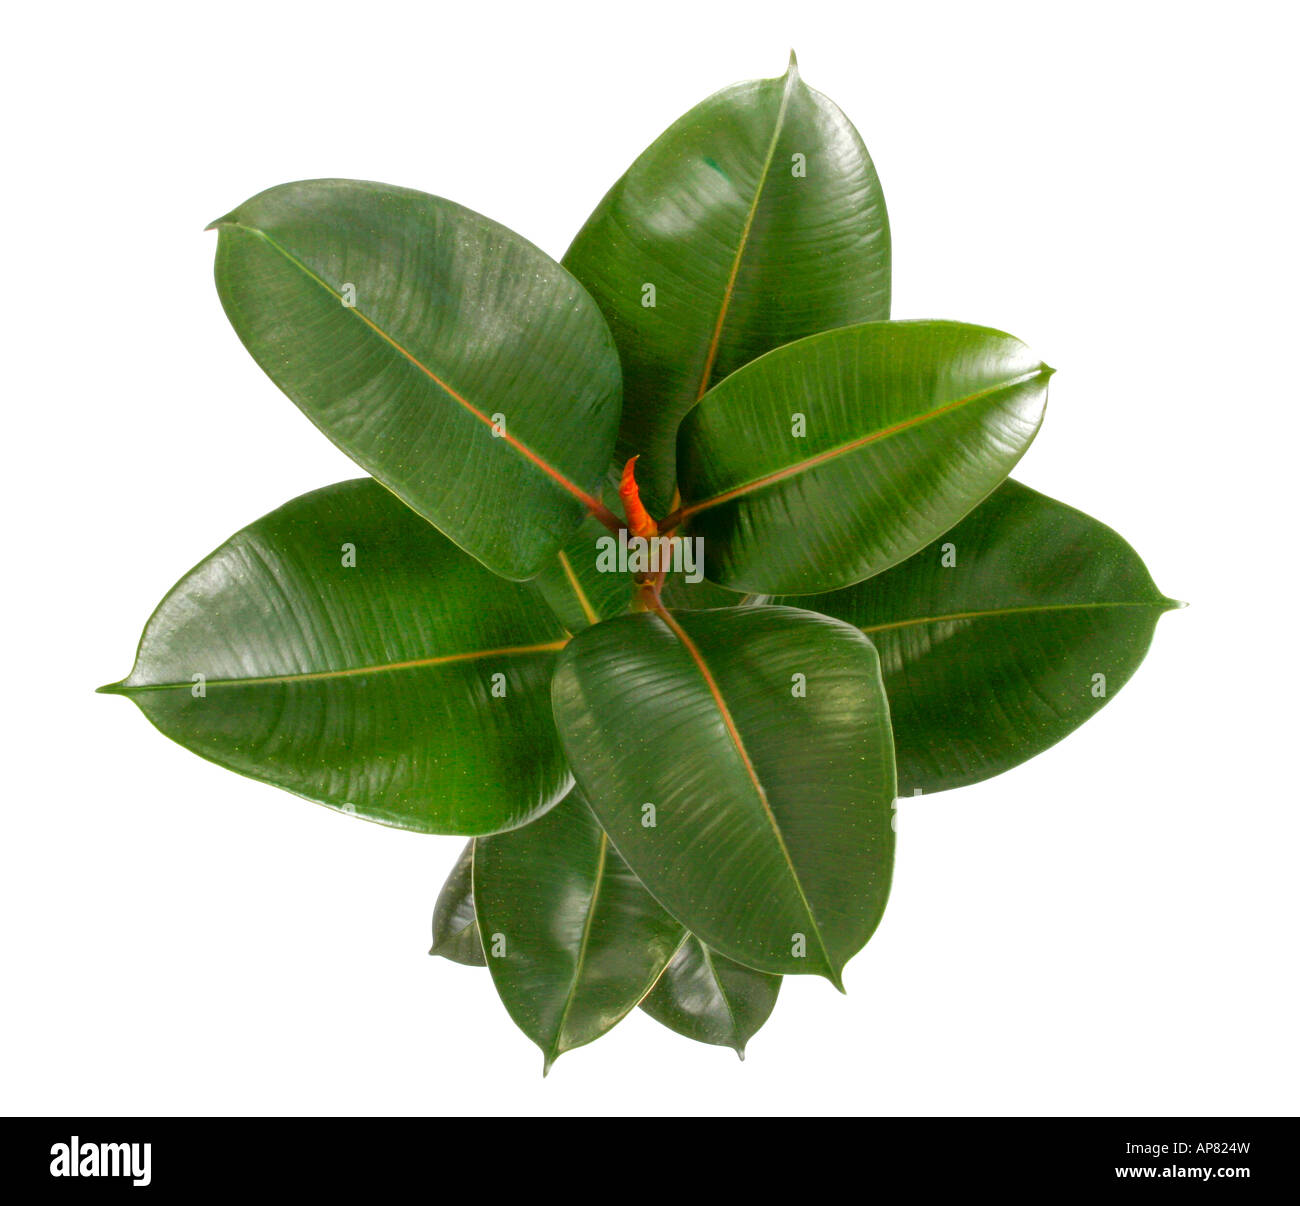 Indian Rubber Tree Rubber Plant Ficus elastica potted ...